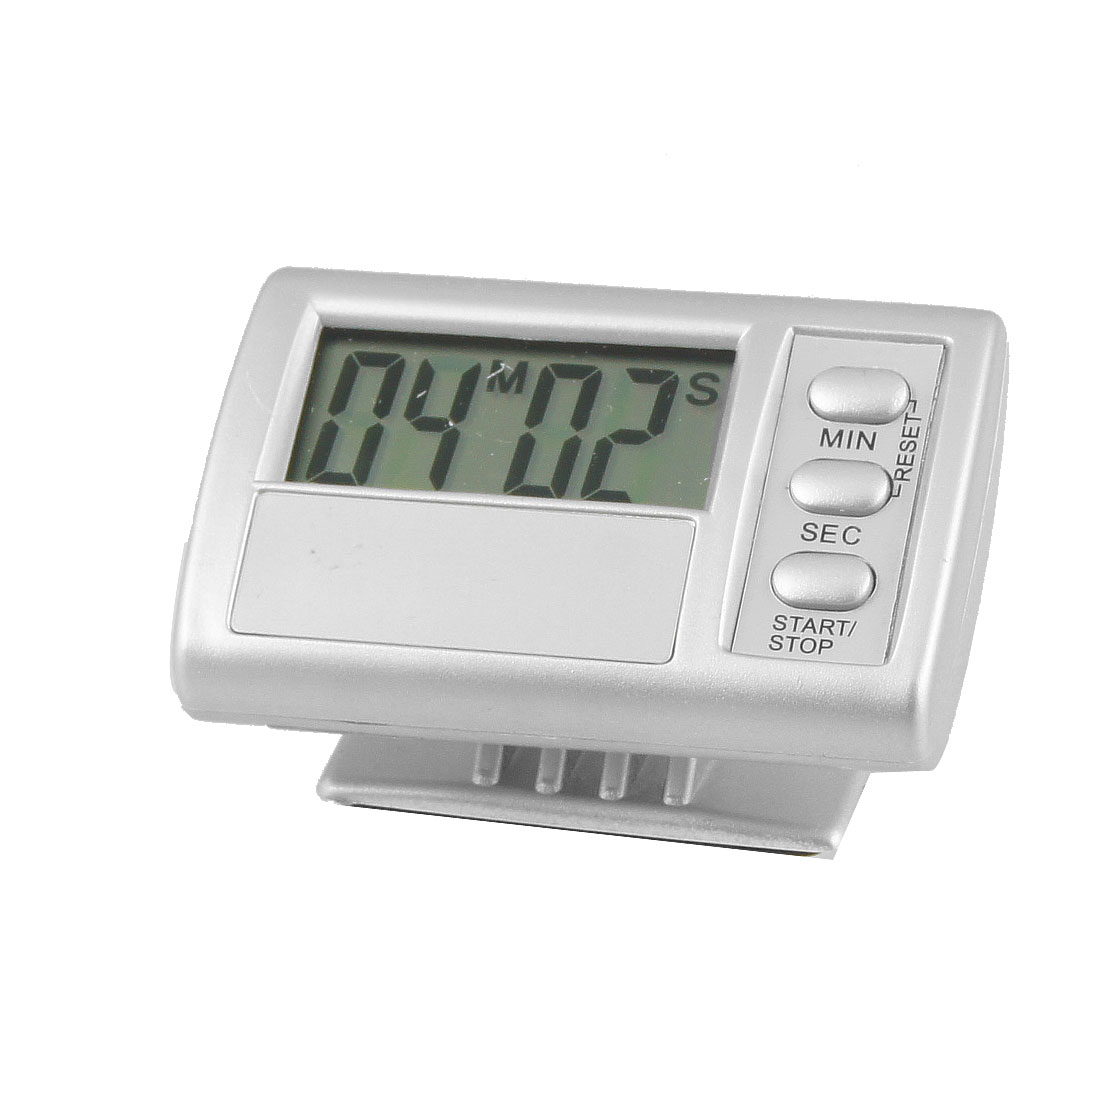 Home Rectangular Adhesive Digital LCD 99 Minute 59 Second Count Down Alarm Timer w Support